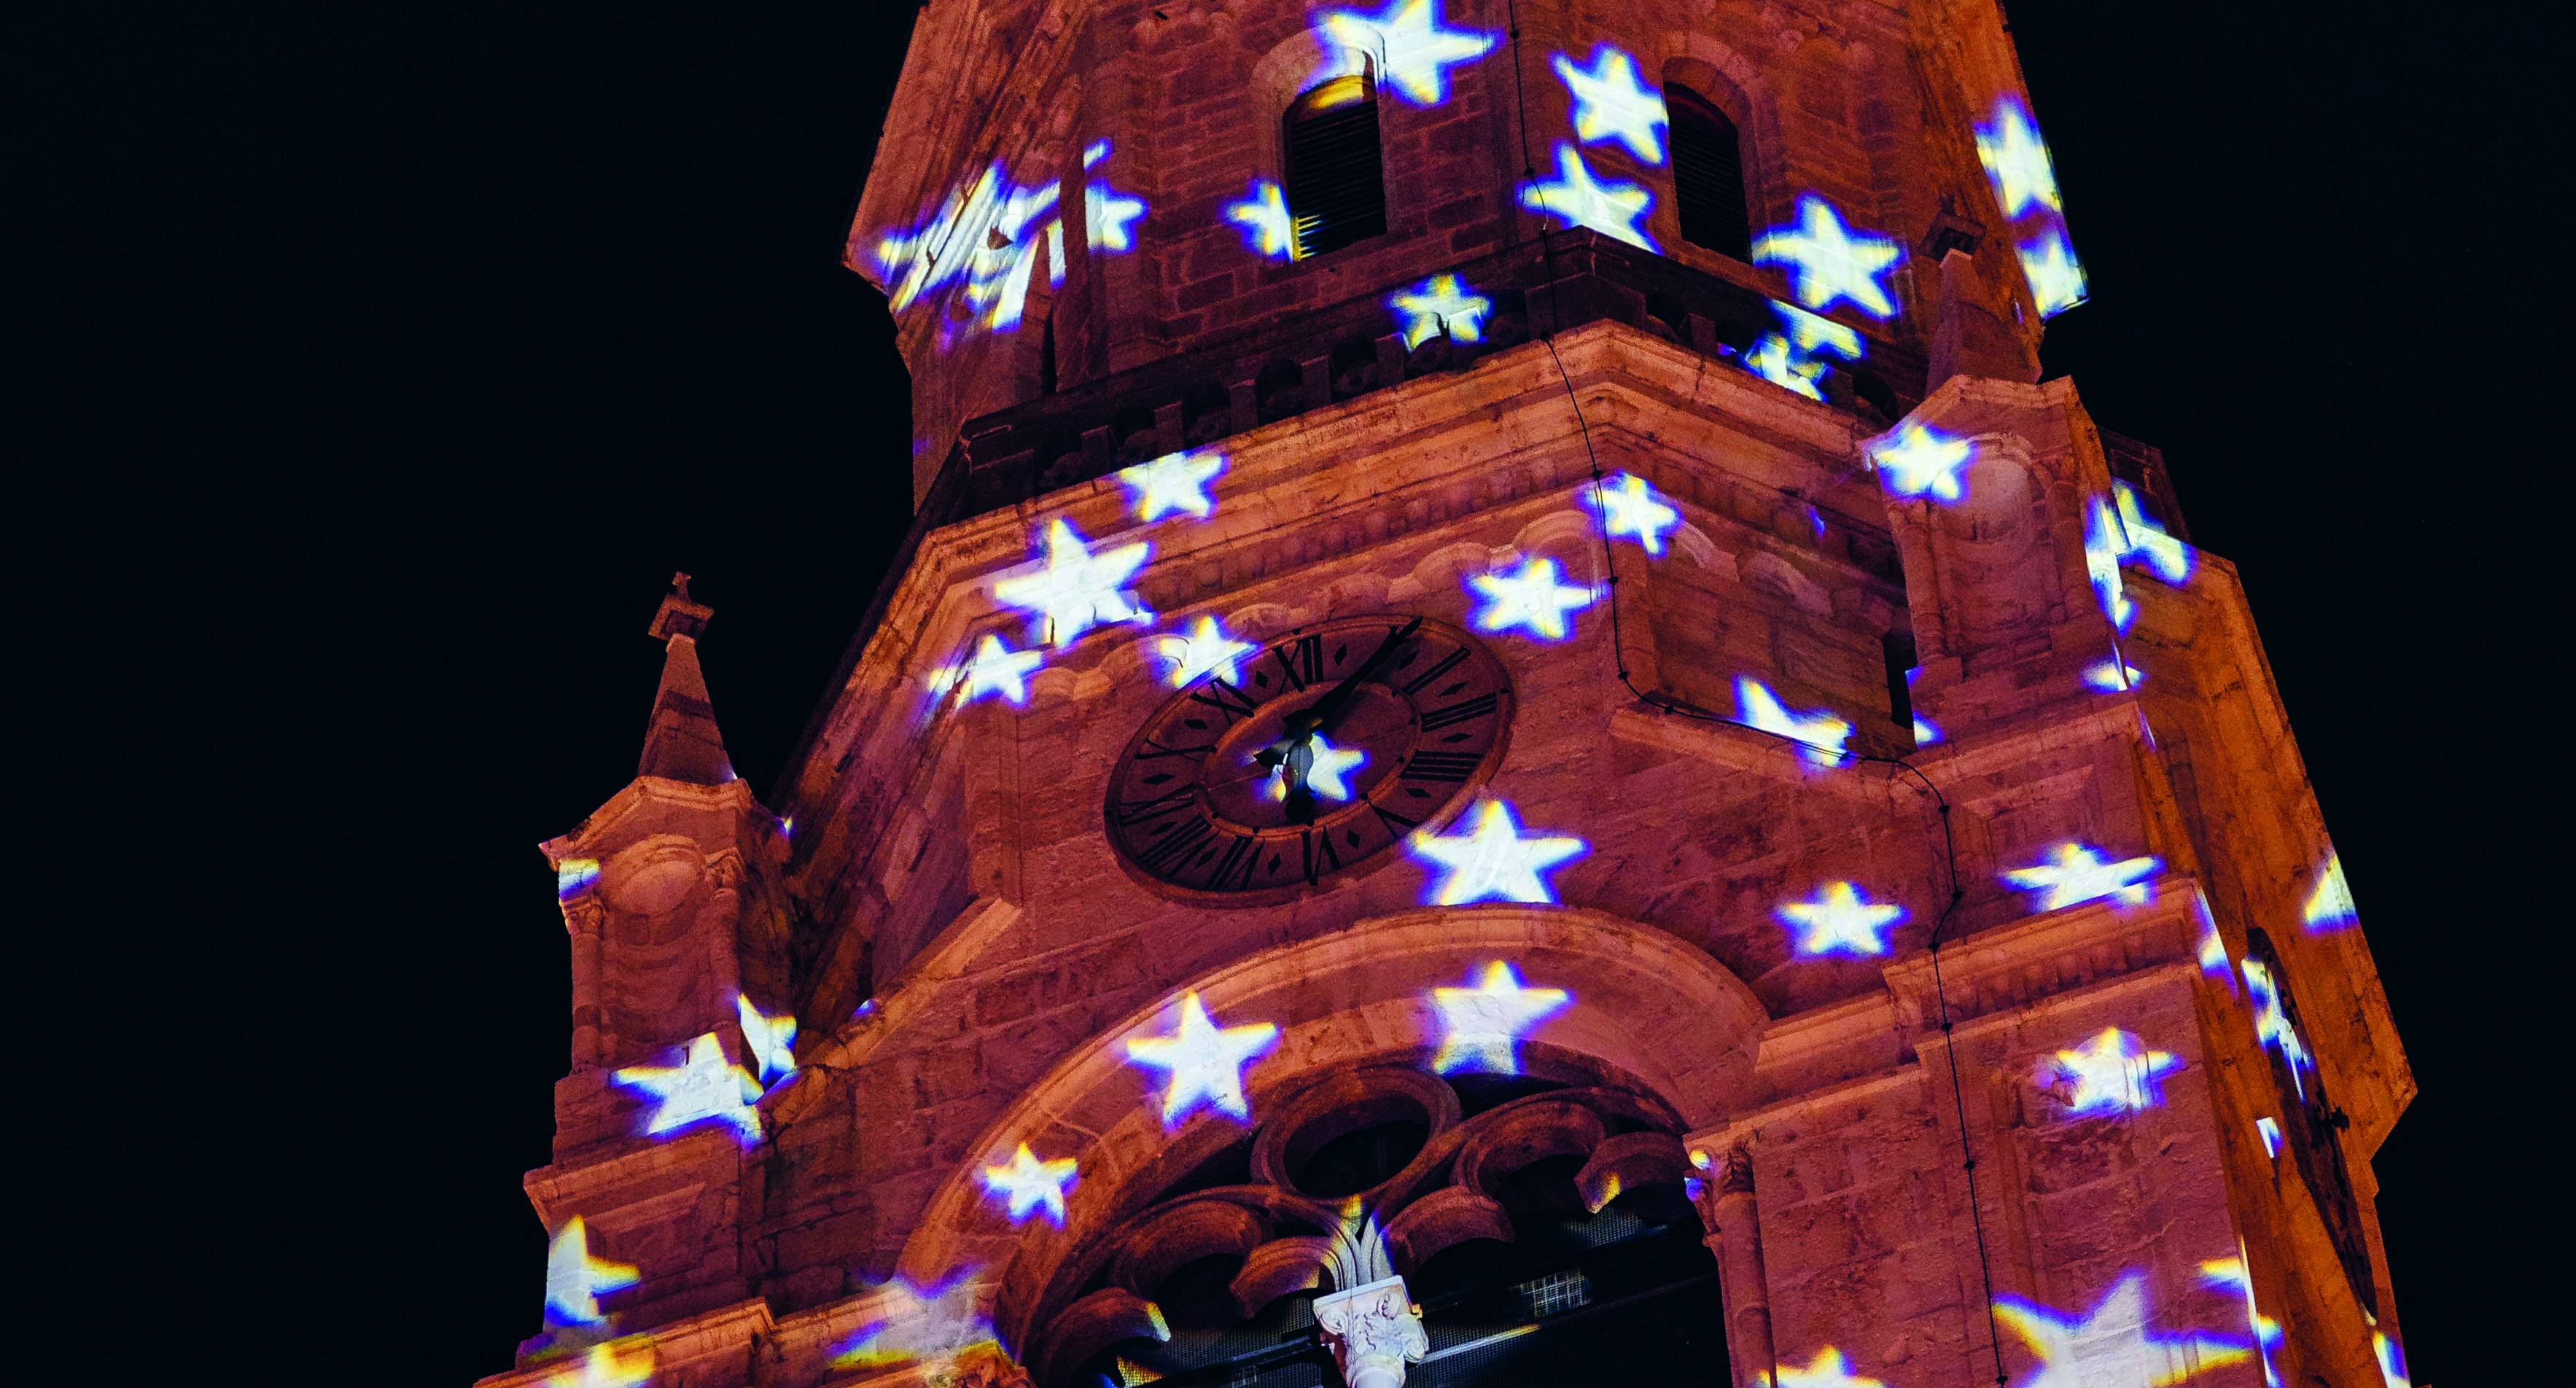 Projection mapping on the Basilica Minore dei Santi Filippo e Giacomo